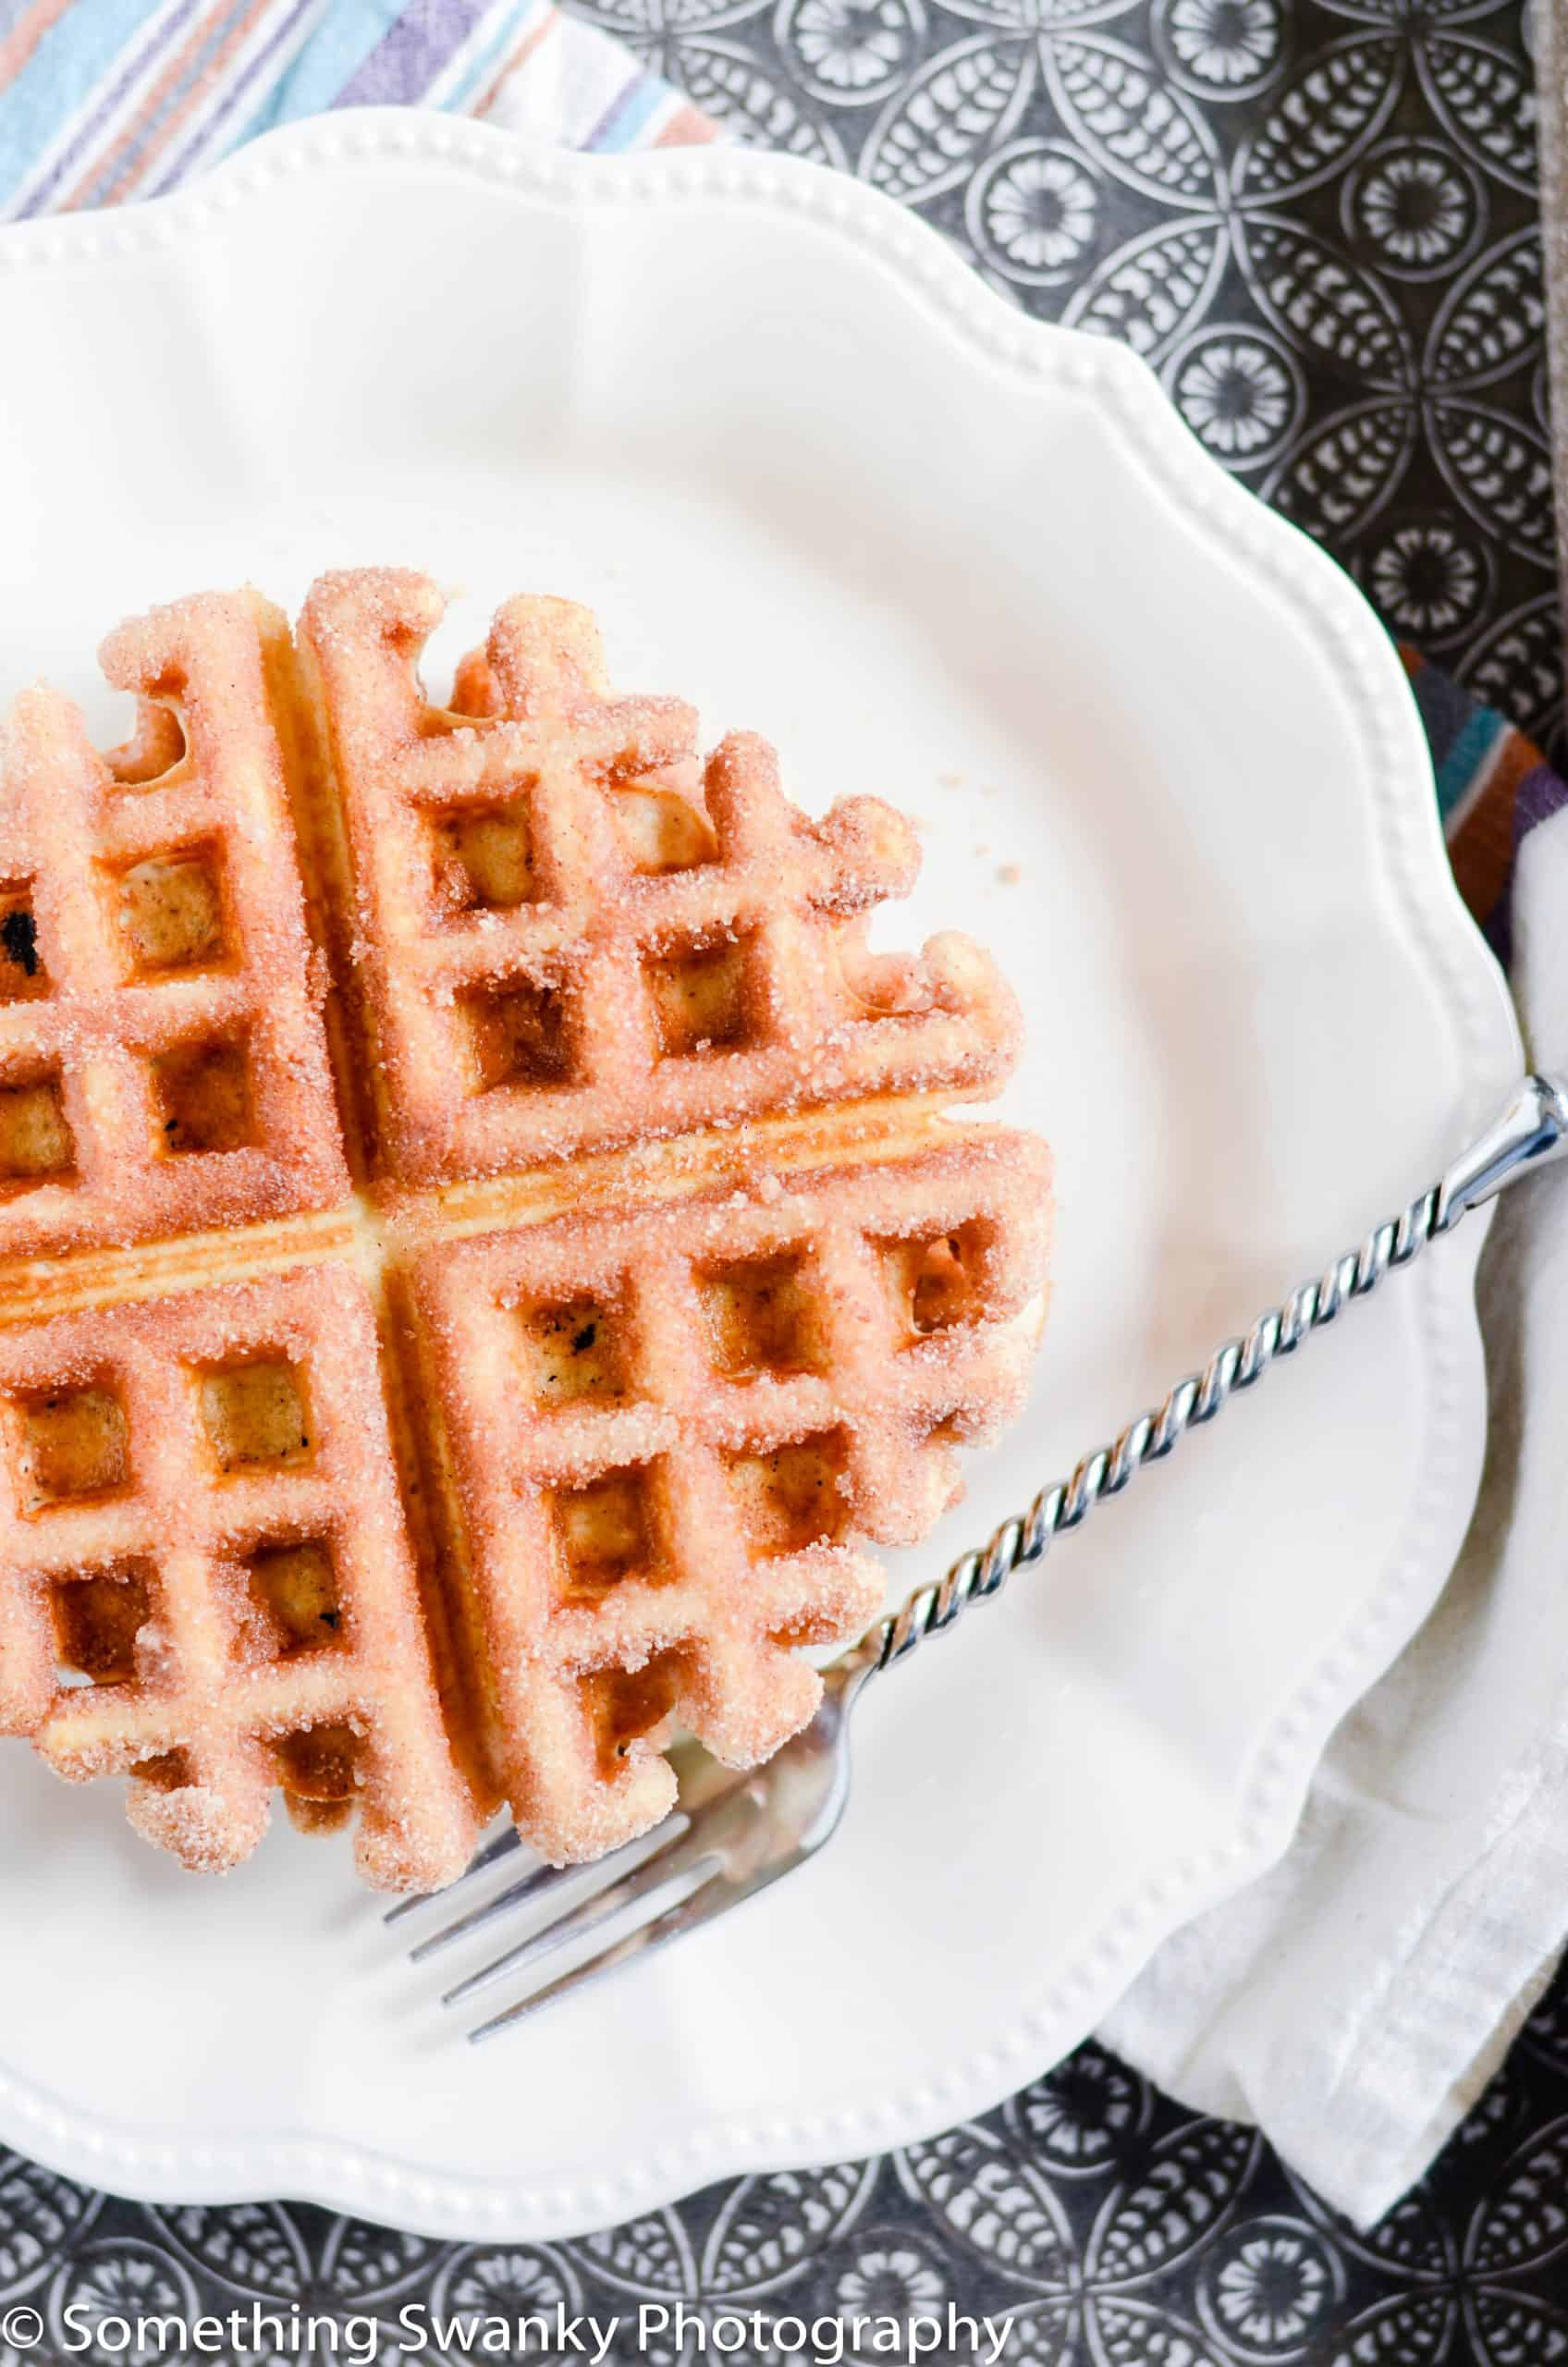 These waffles are so easy to make and absolutely melt-in-your-mouth incredible. My favorite Belgian Waffles dipped in butter and coated in cinnamon sugar.